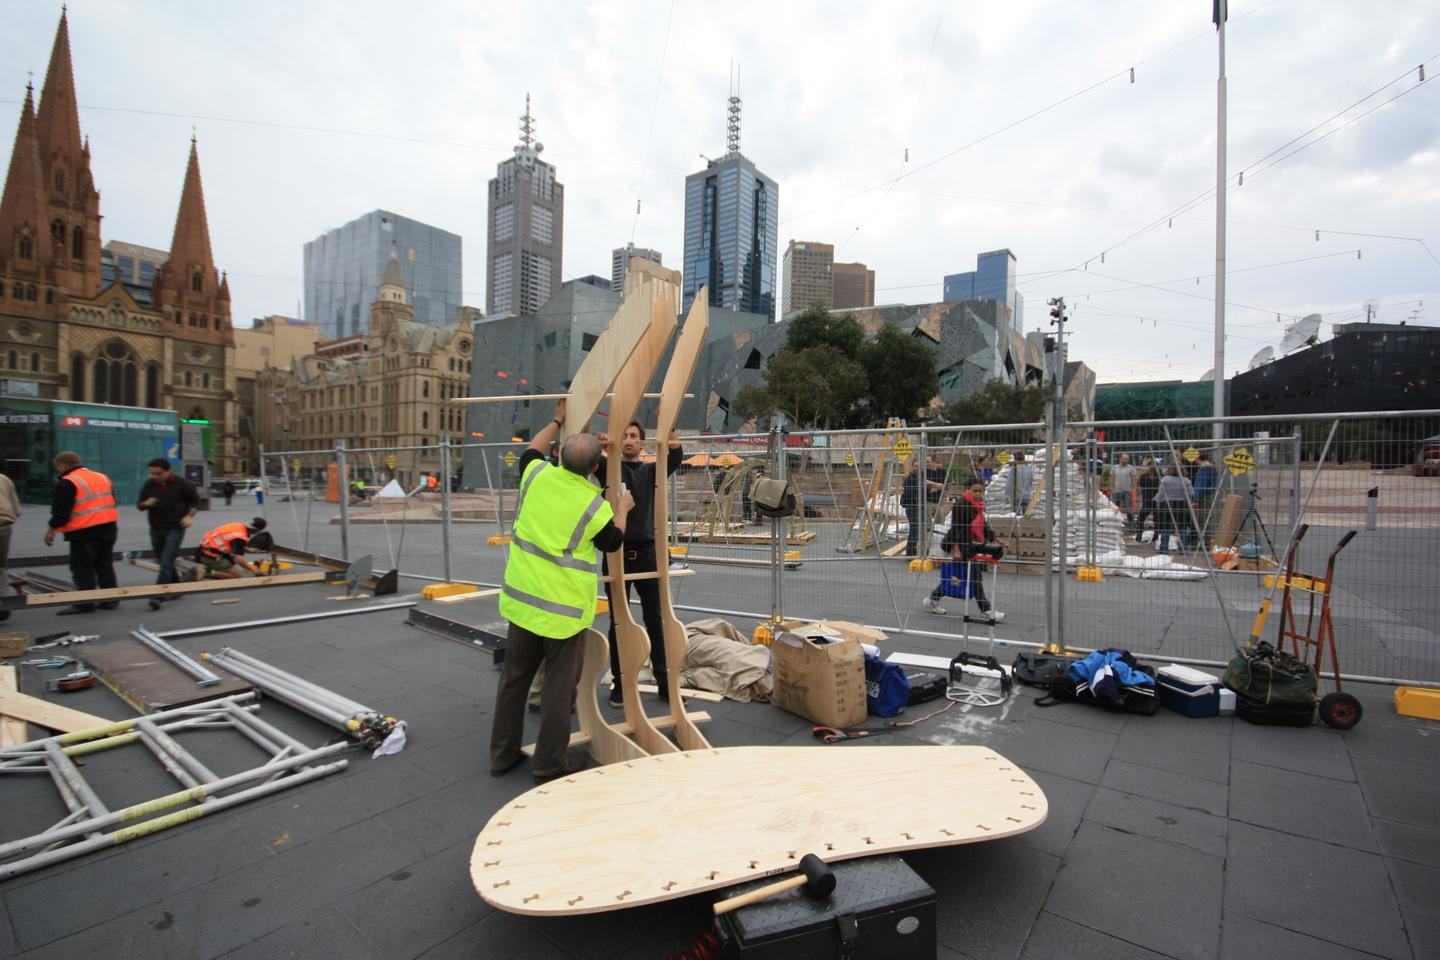 The emergency shelter was unveiled at Melbourne's Emergency Shelter Exhibition